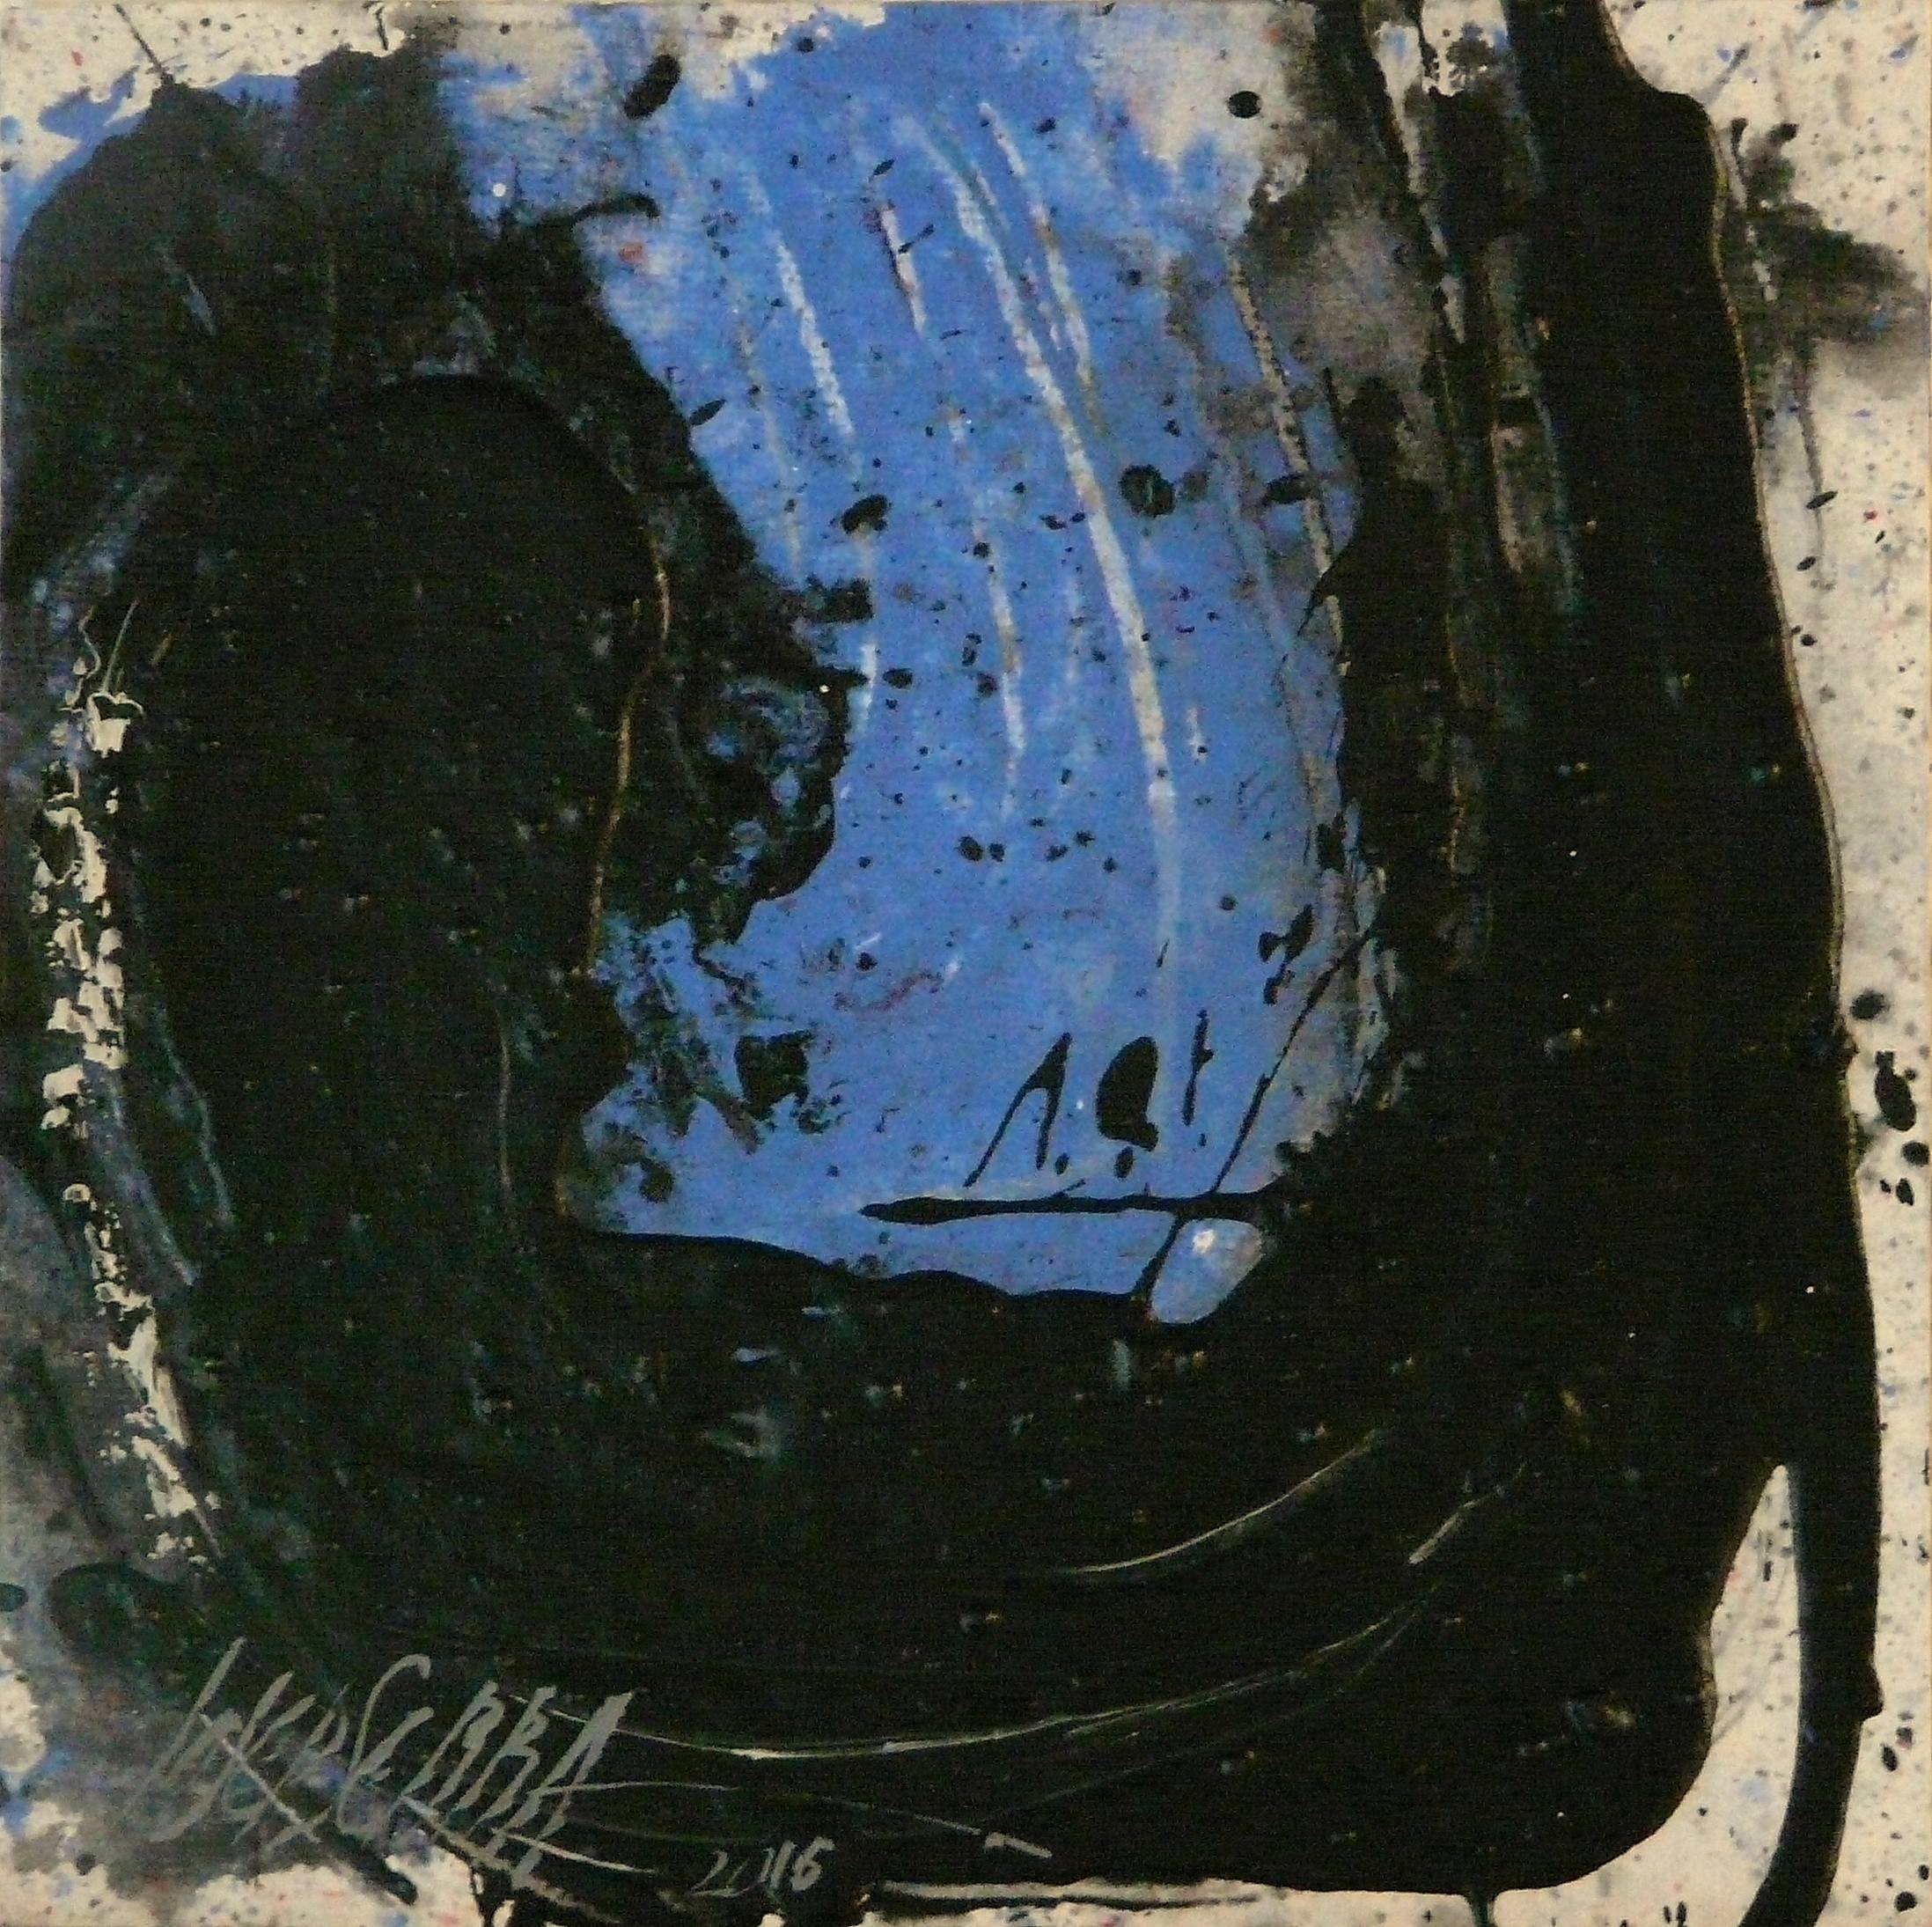 458 - Mixed technique on paper 21 x 29,5 cm 2016